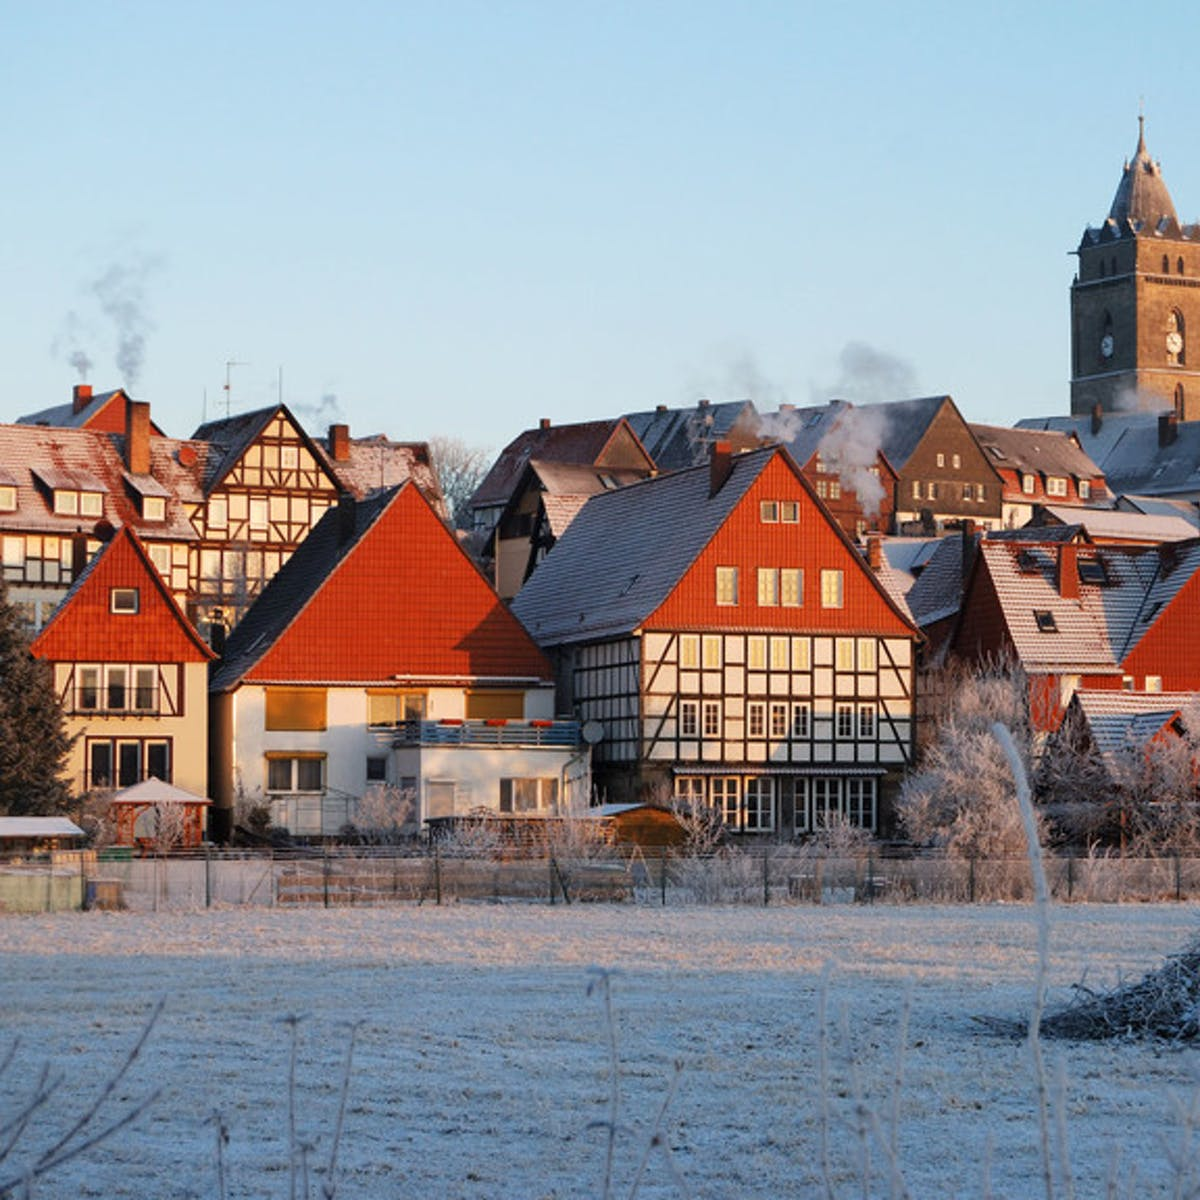 Rather than fight the power, this German town went fully renewable